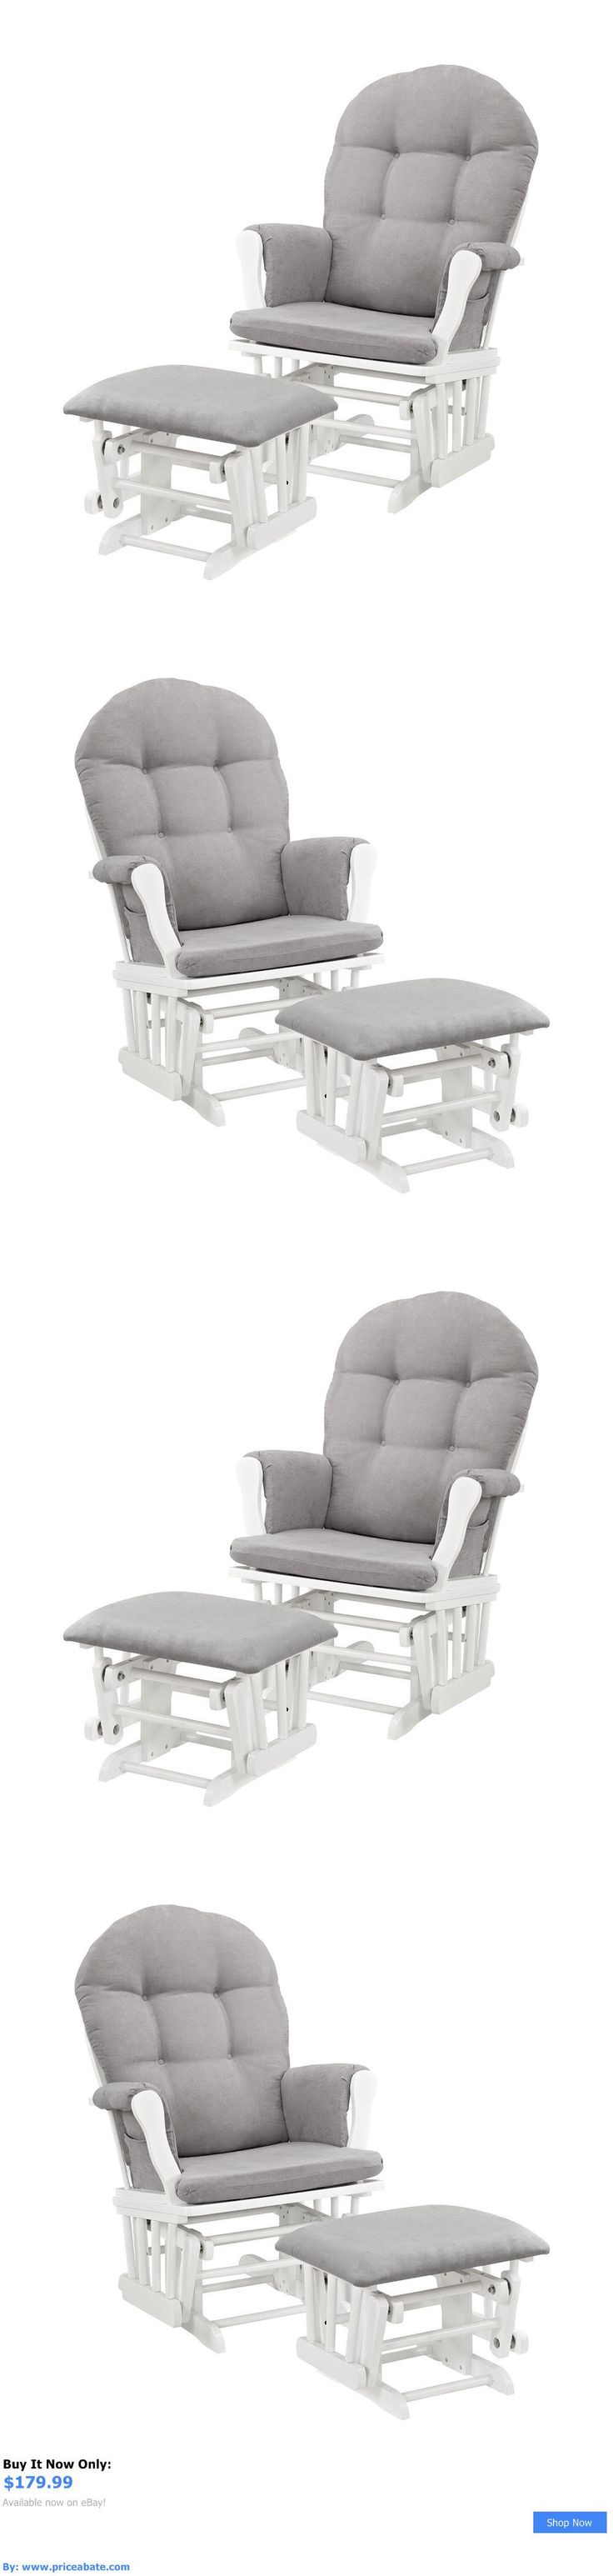 Baby Nursery: Baby Glider Chair Rocking Chair Nursery Furniture Nursing Gliders Ottoman Infant BUY IT NOW ONLY: $179.99 #priceabateBabyNursery OR #priceabate